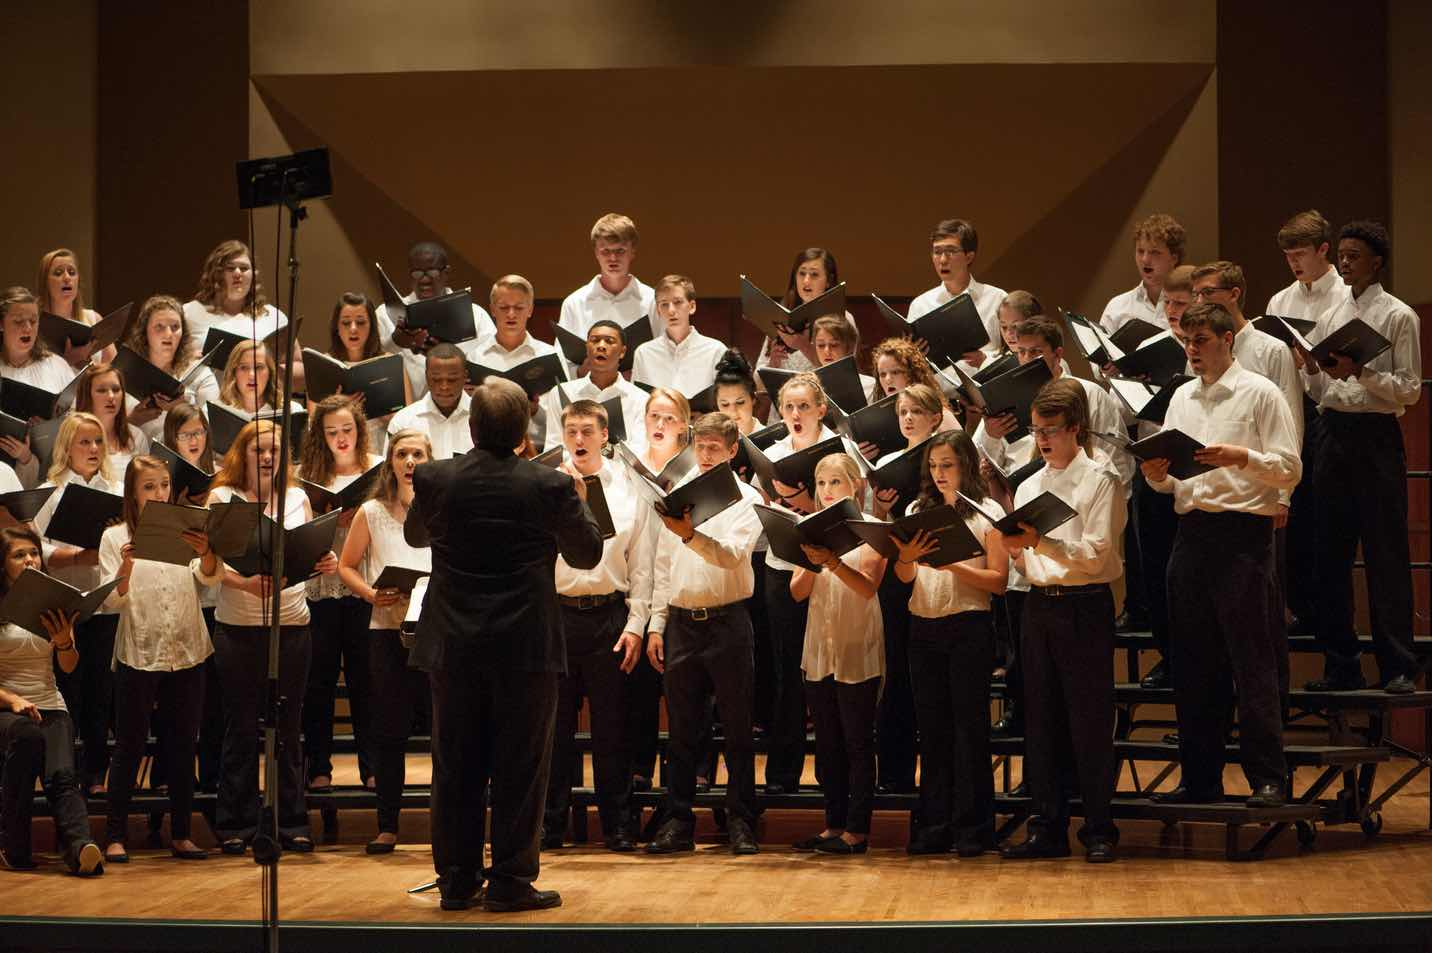 a study of choir Research has shown for some time that singing in a choir has tremendous benefits for physical and mental well-bing, leading some to campaign for it to be prescribed as a treatment for medical conditions in addition, recent findings from a study suggest that there are specific benefits related to choral.